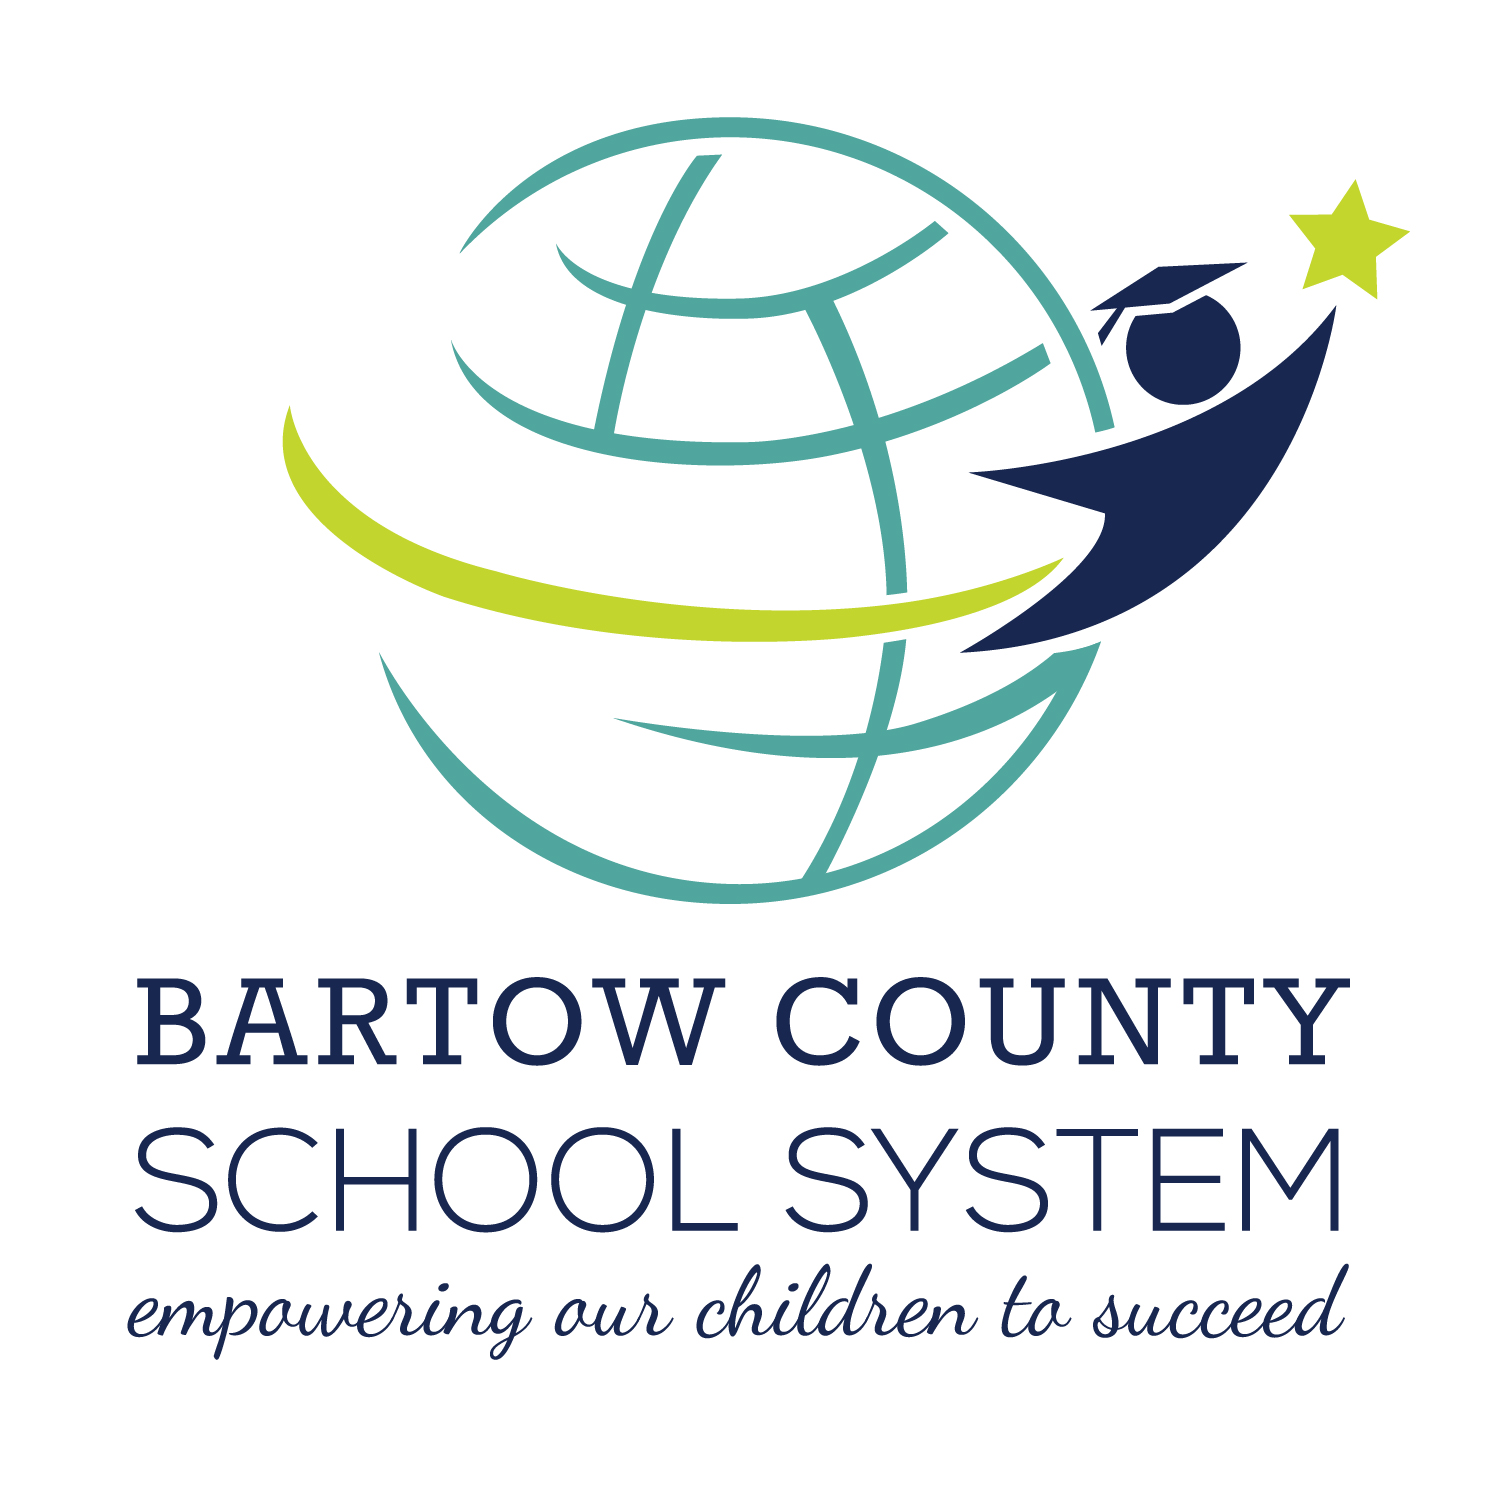 Bartow County School System